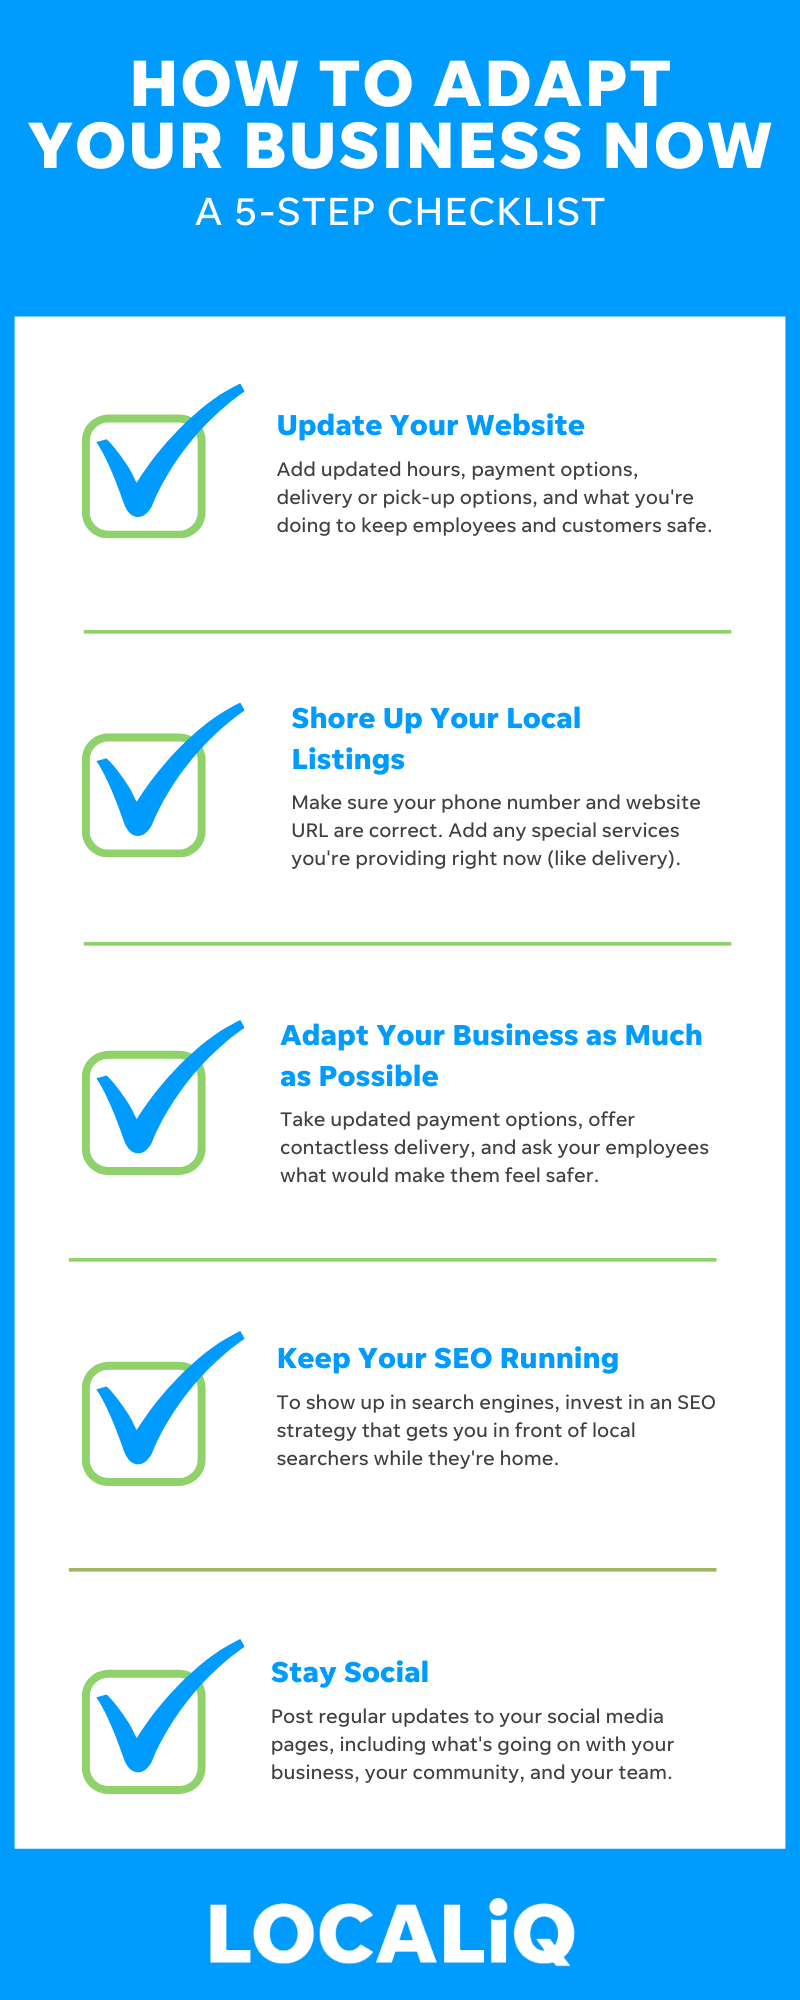 LOCALiQ Infographic - How to Adapt Your Business in 5 Easy Steps